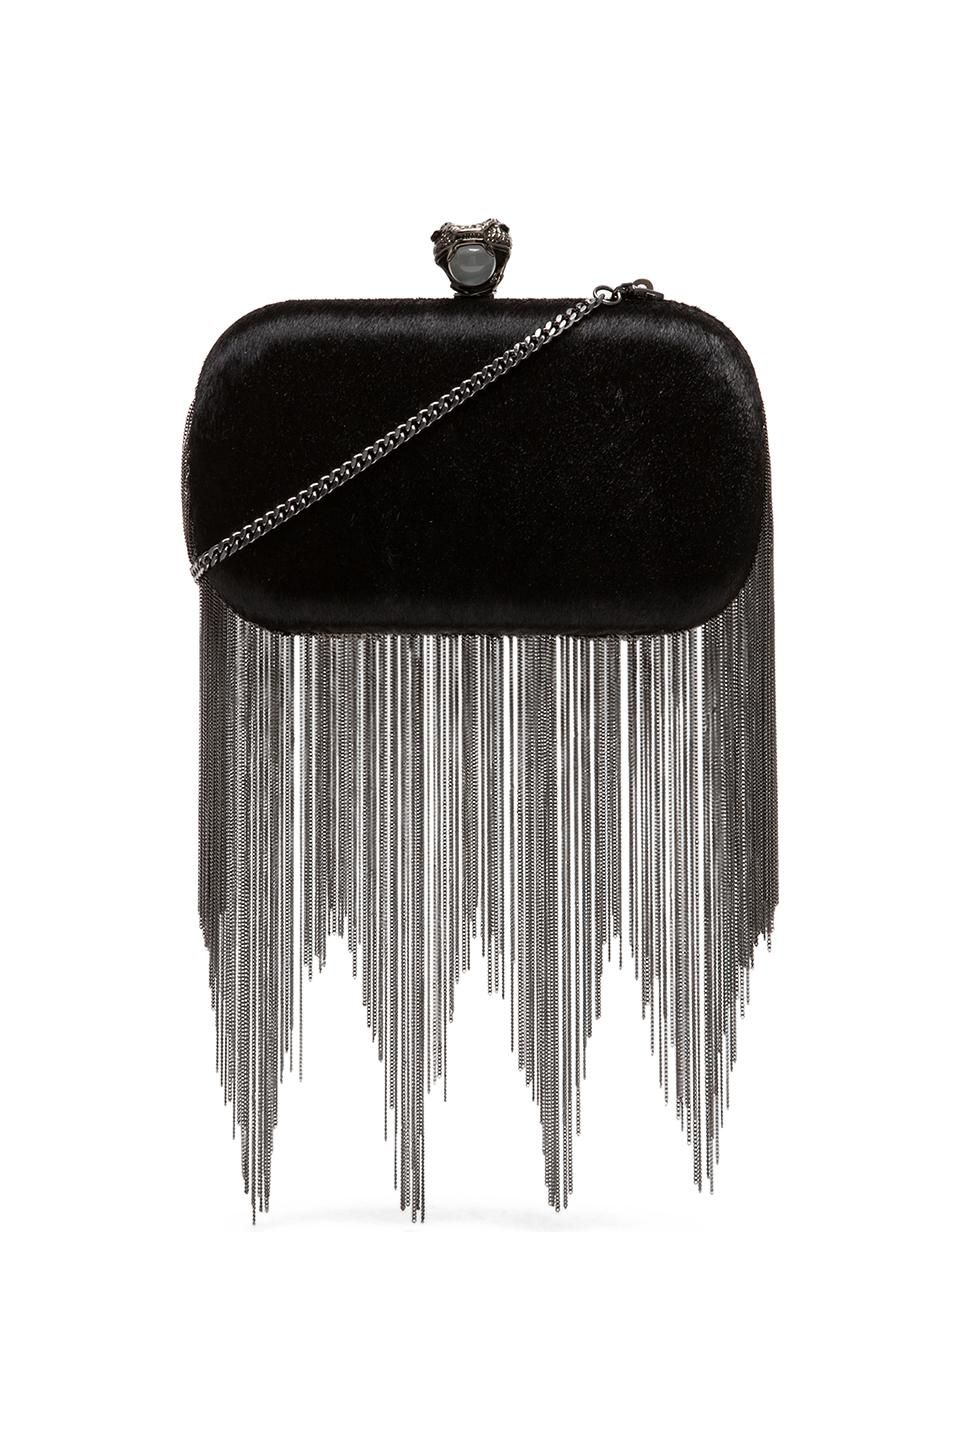 House of Harlow Jude Clutch in Black Haircalf